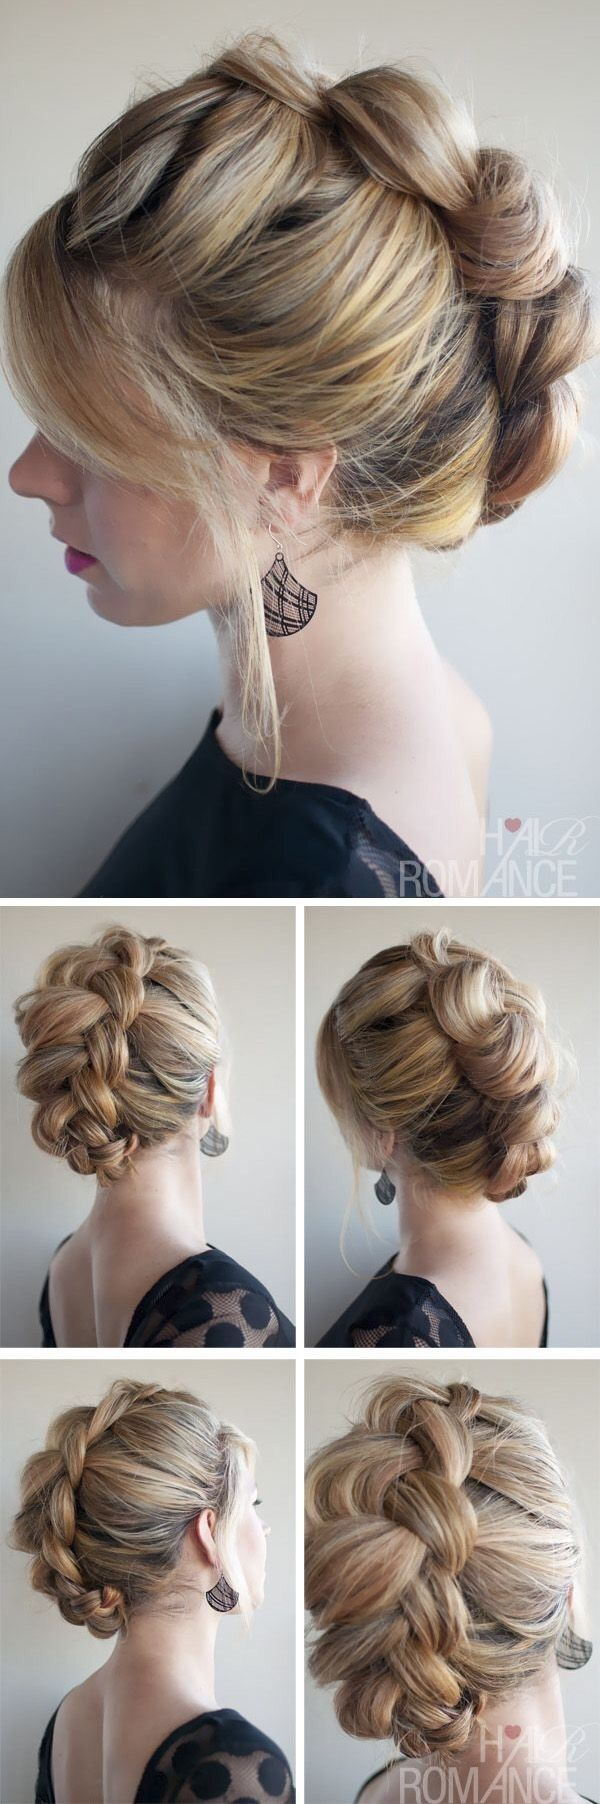 Inspiration discovered by nellit long hair bloomdotcom beauty